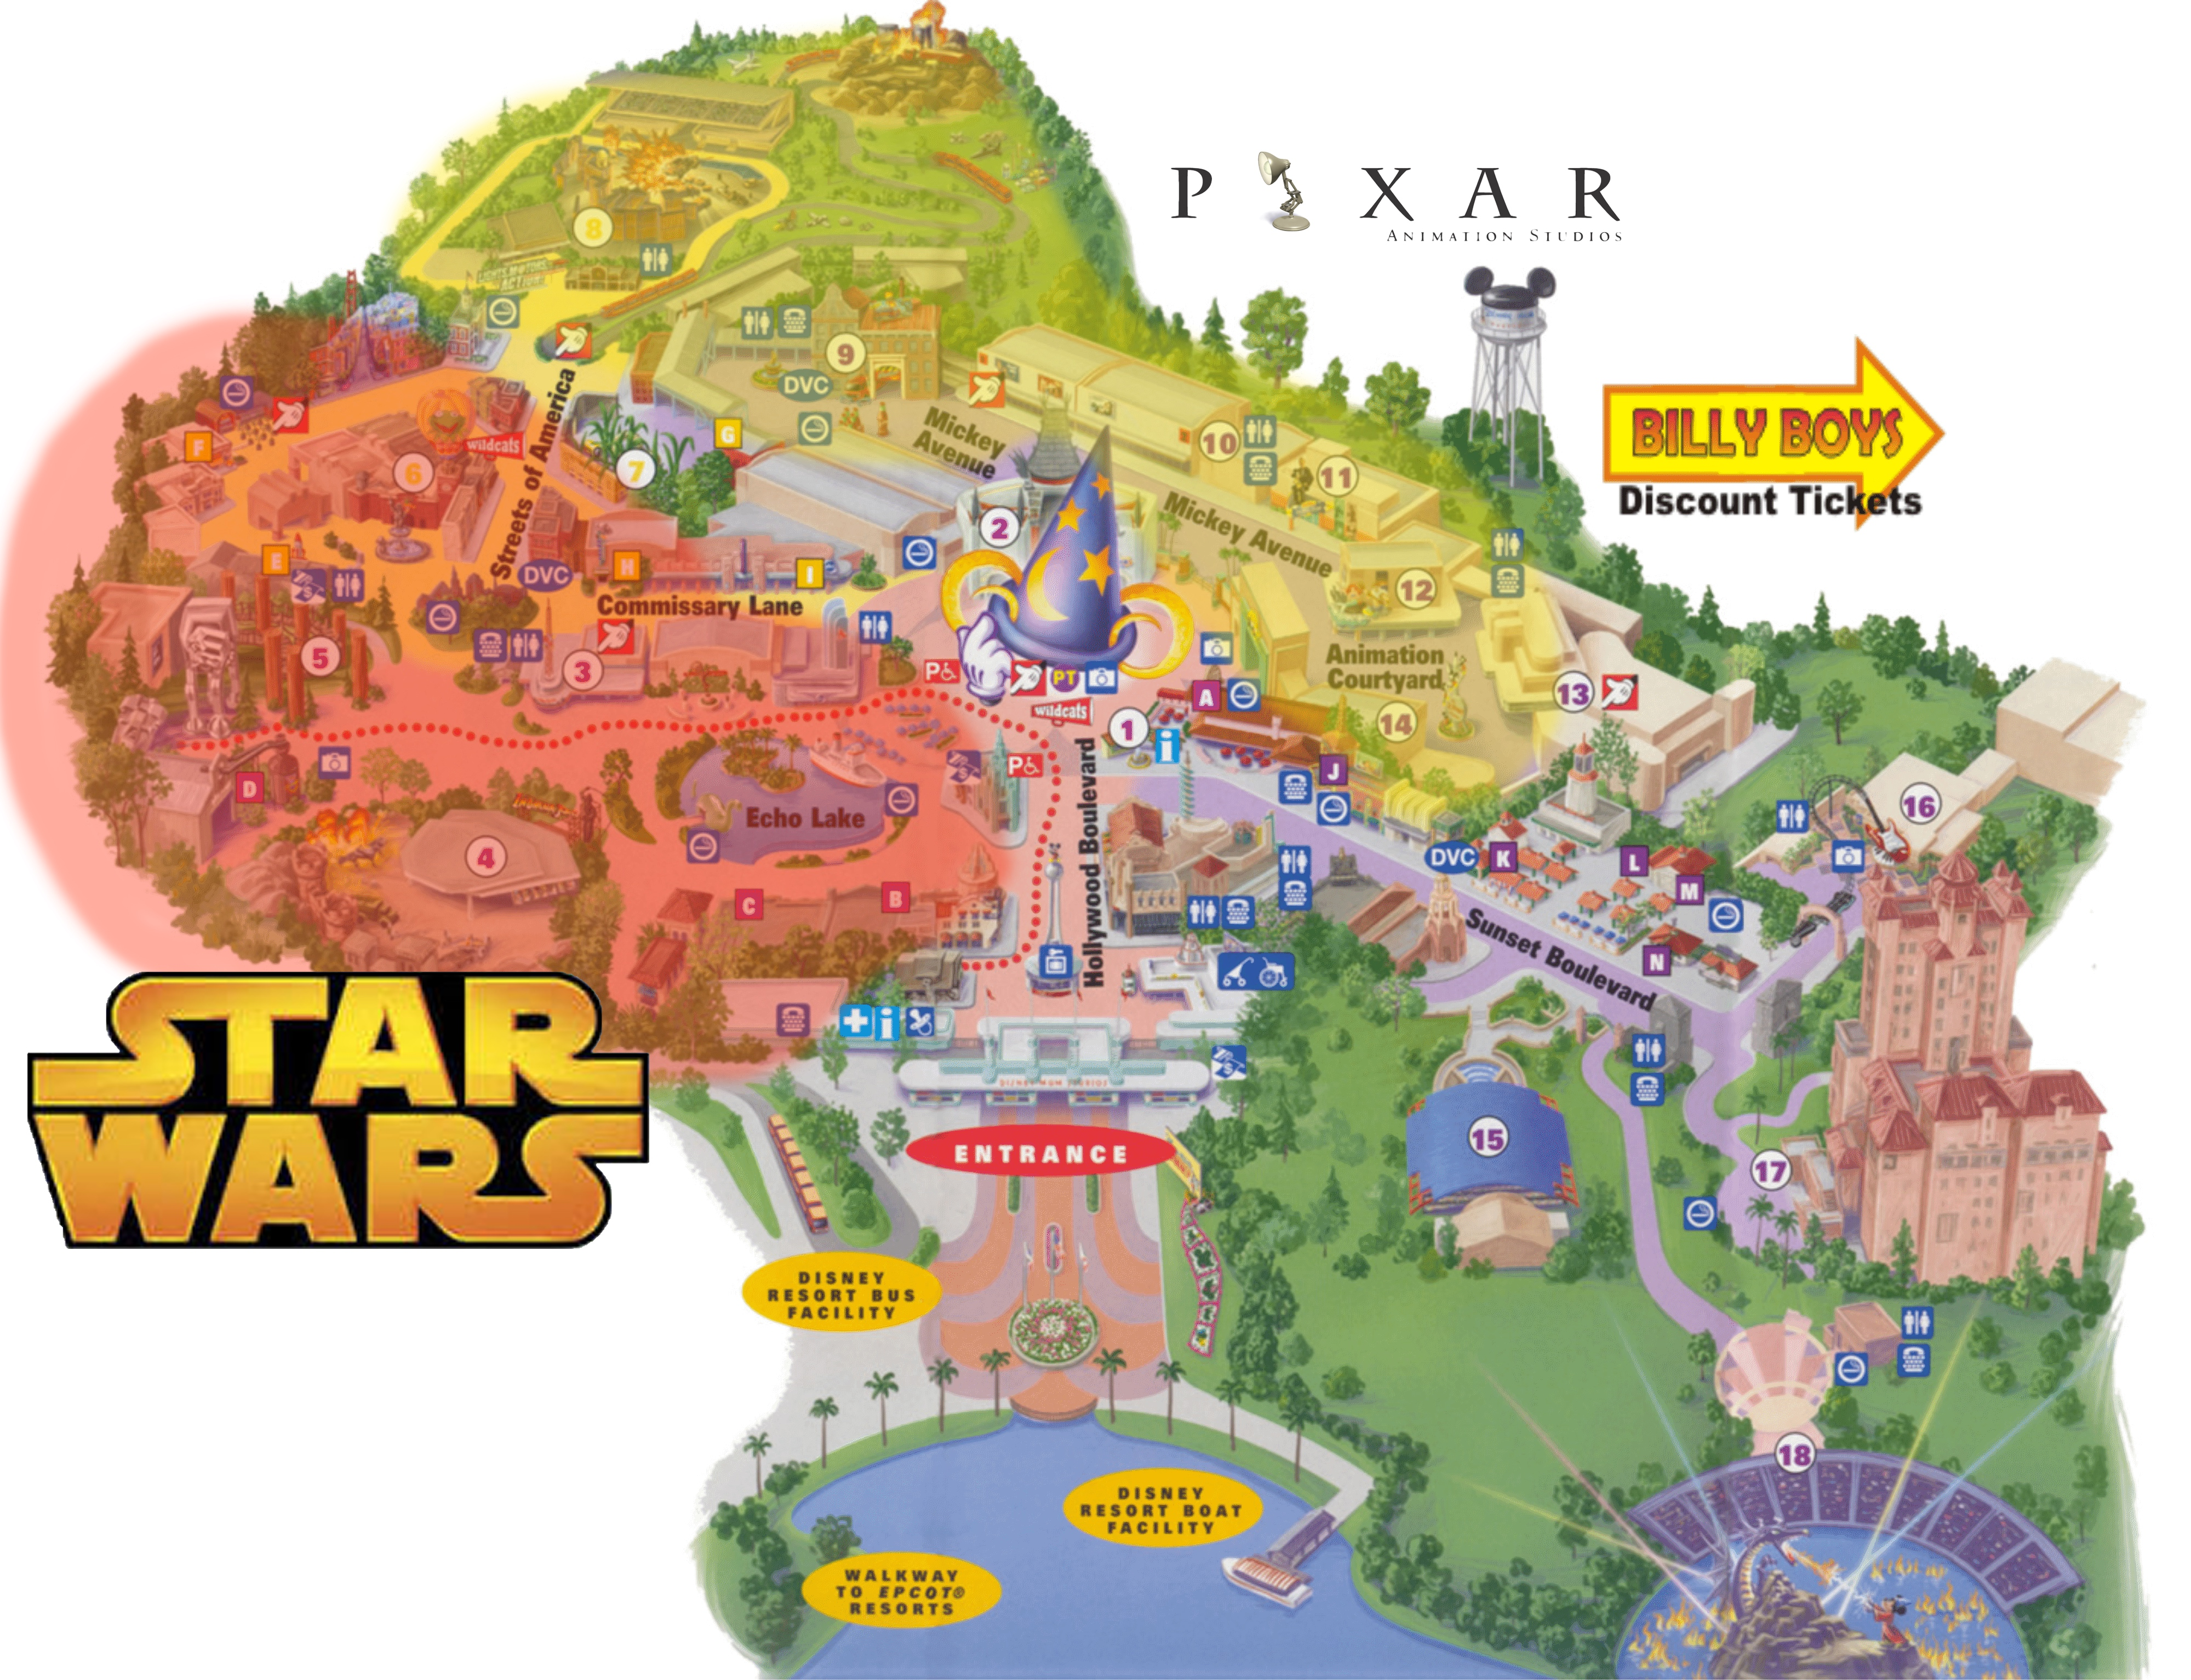 Disney Hollywood Studios Changes Could Add More Star Wars, Pixar And ...